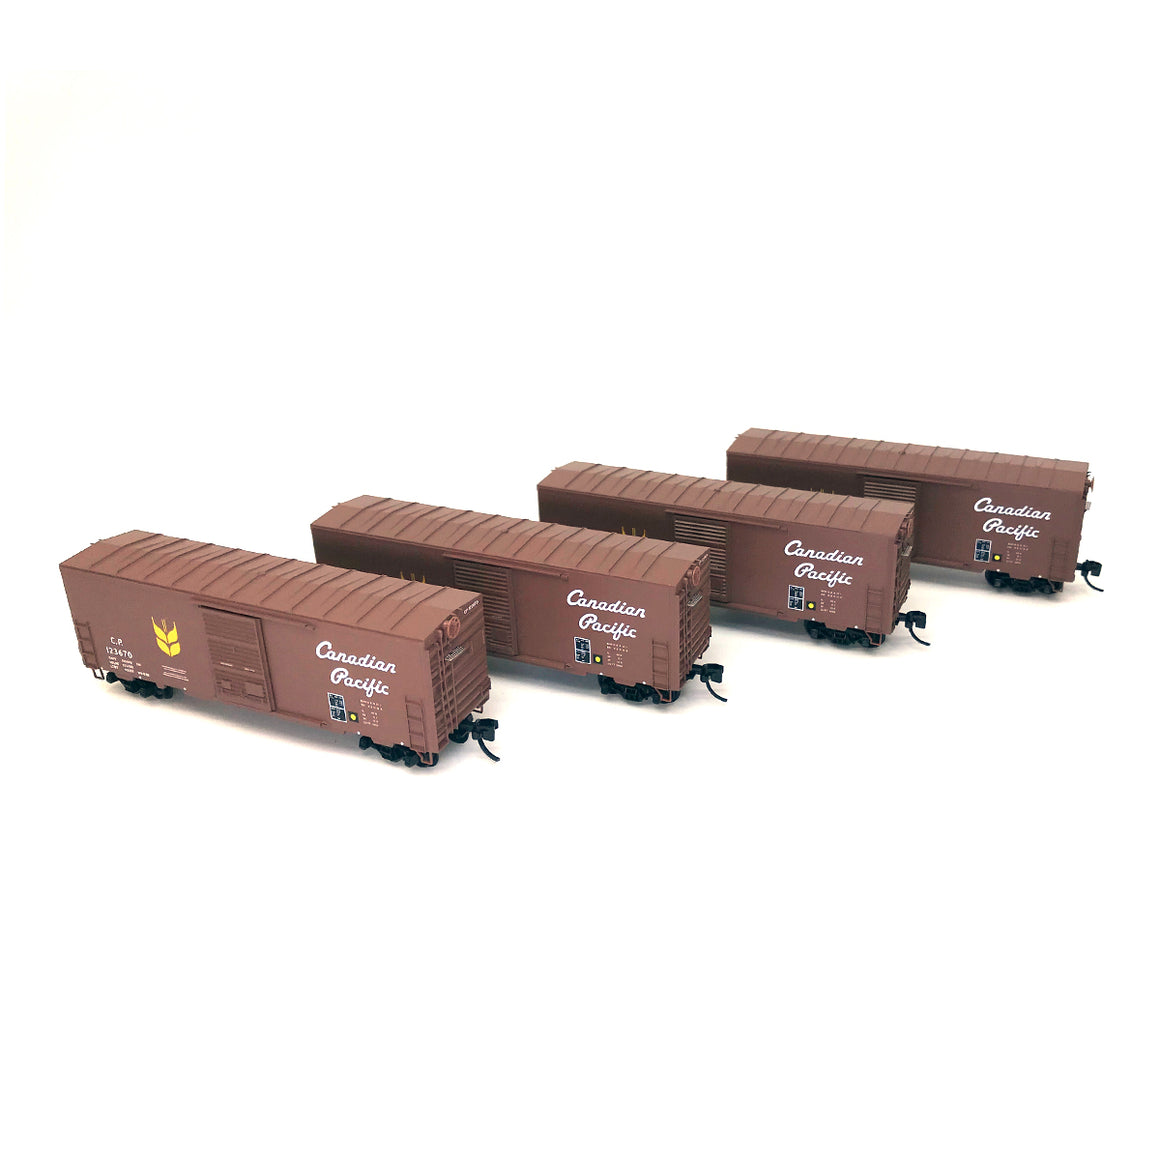 N Scale: 40' Standard Single-Door Box Car - Canadian Pacific - 4 Pack